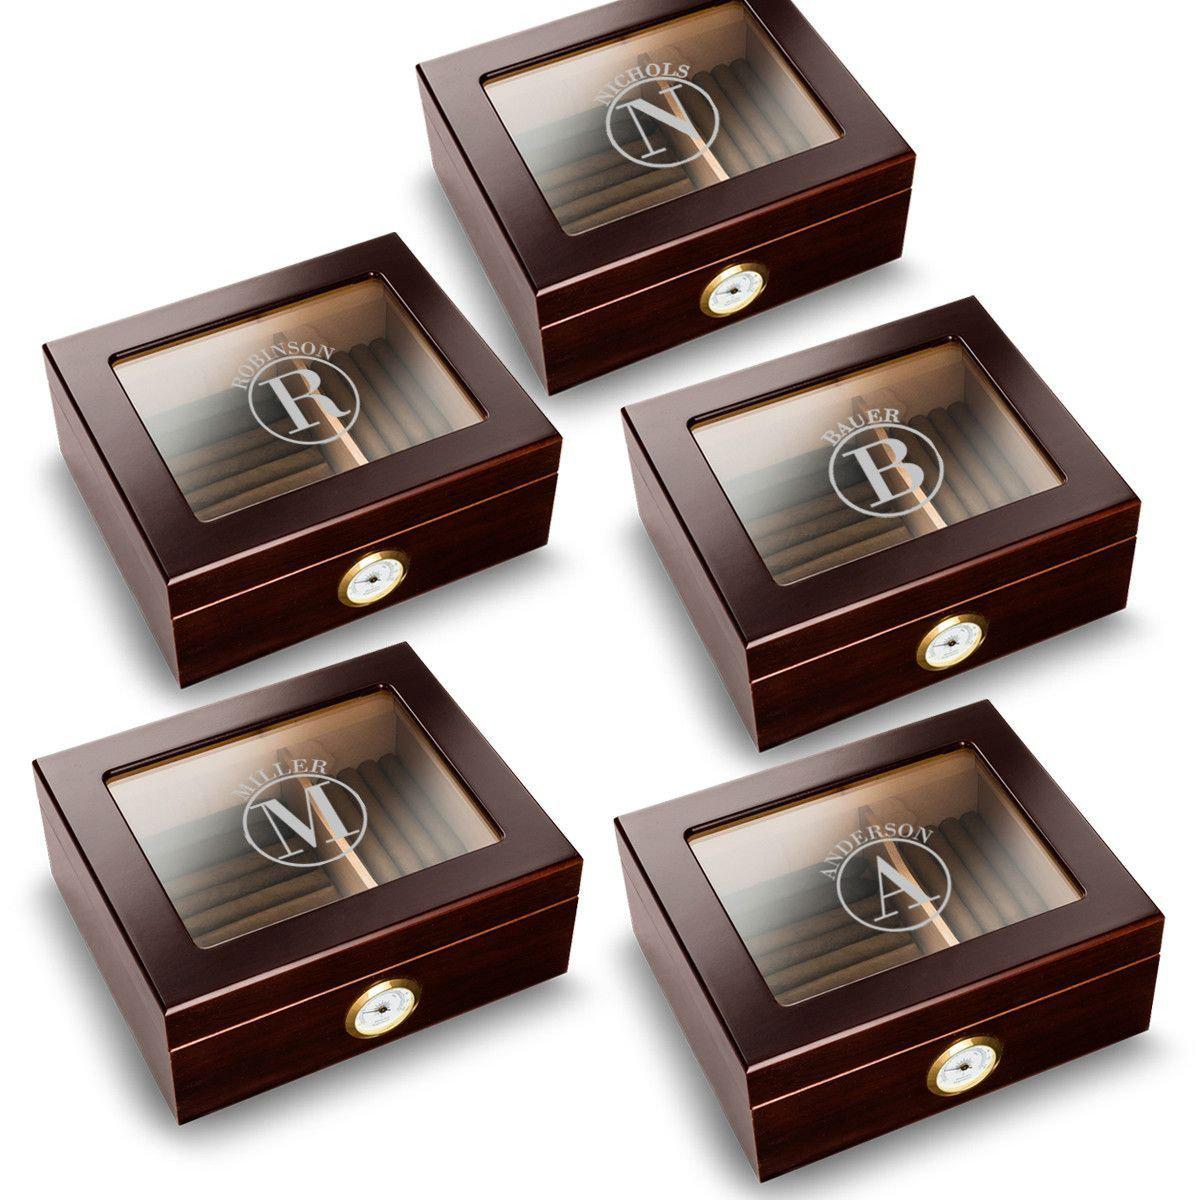 Personalized-Trinidad-Glass-Top-Mahogany-Humidors-Set-of-5